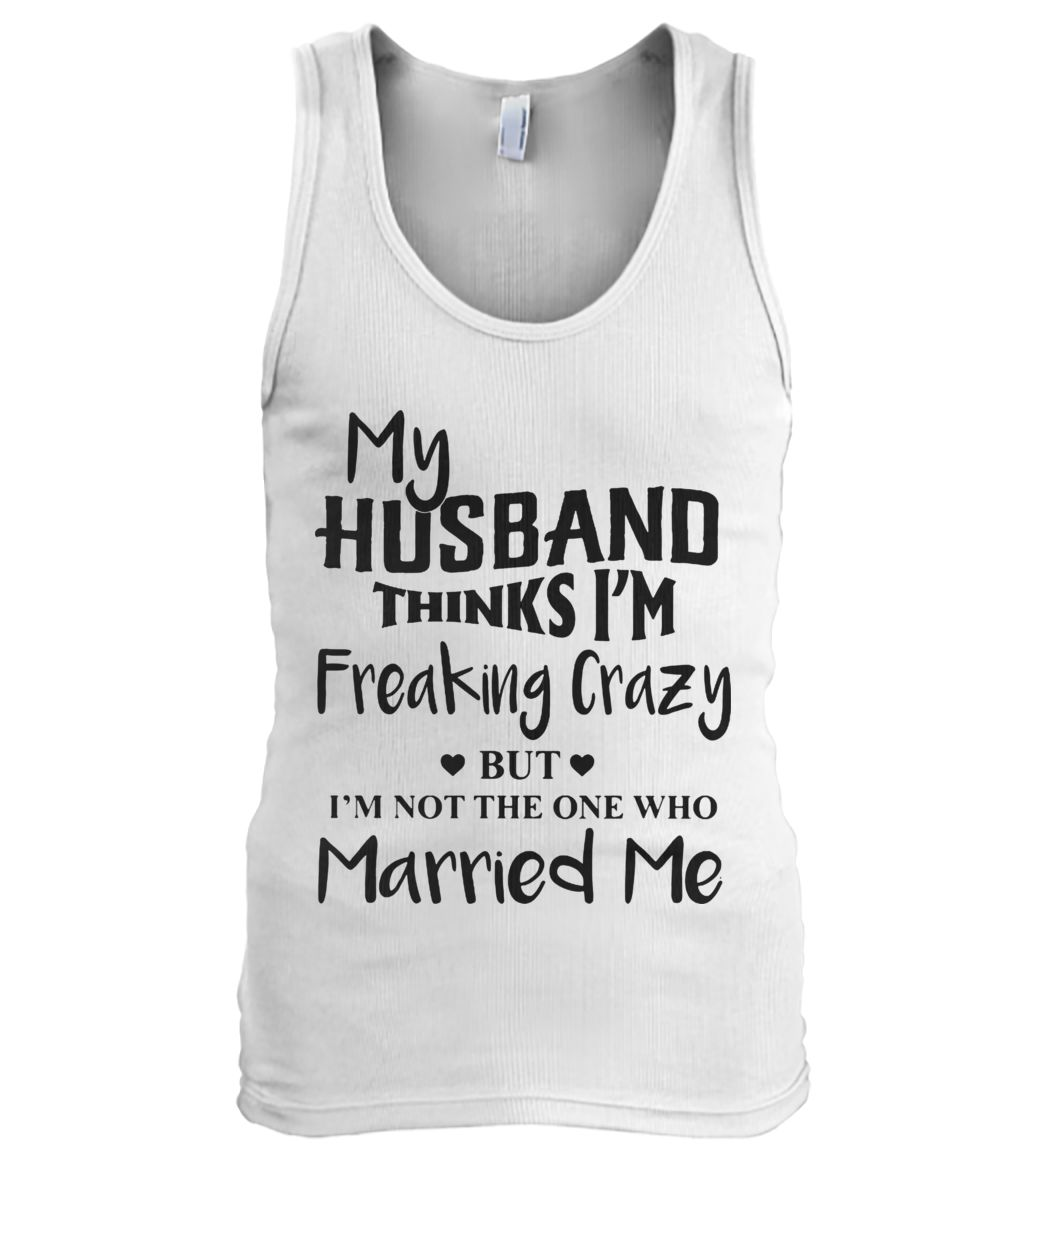 My husband thinks I'm freaking crazy but I'm not the one who married me men's tank top